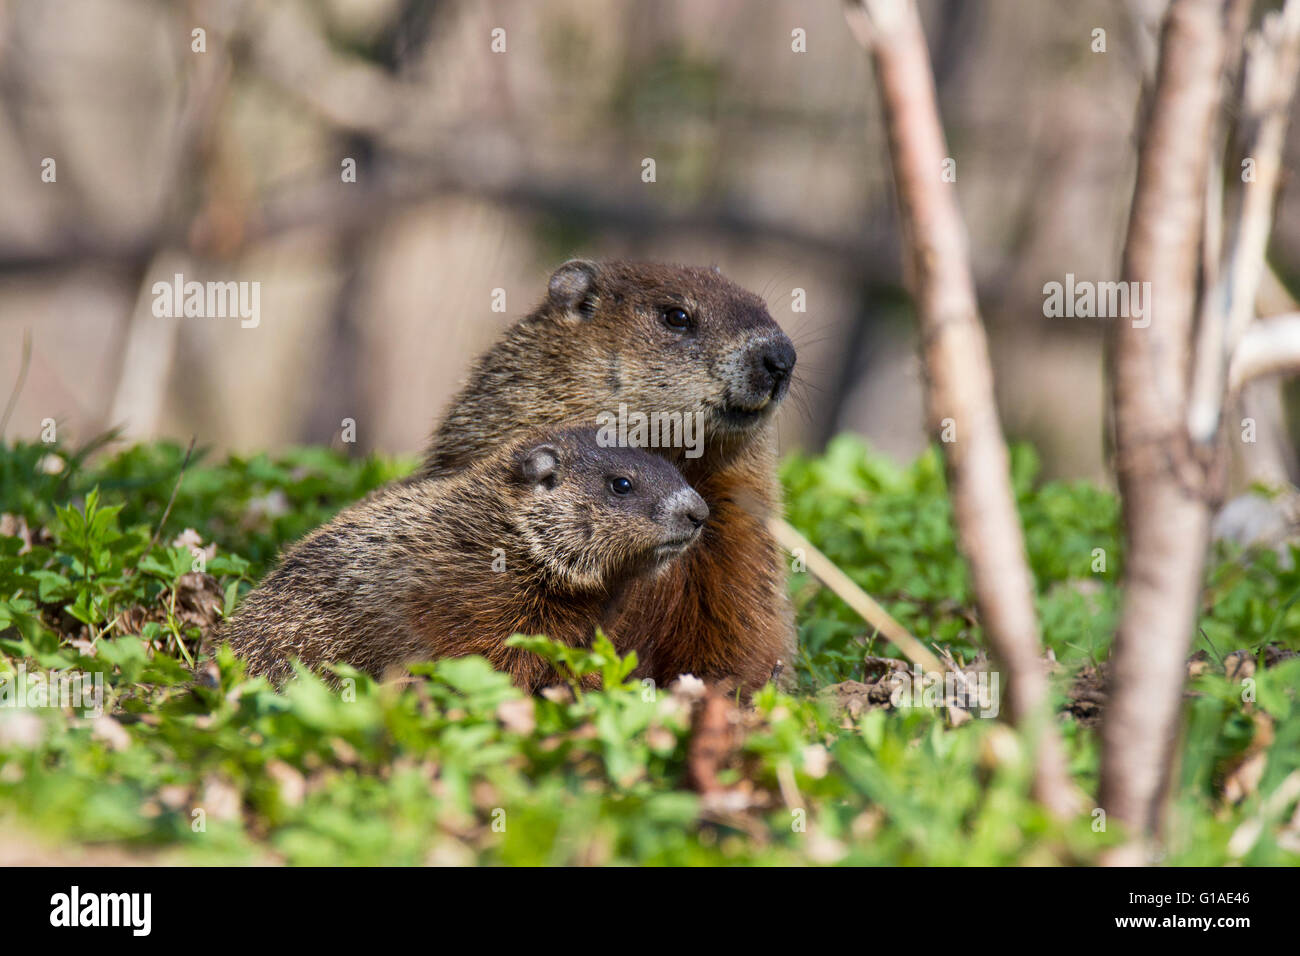 Cute Groundhog family (Marmota monax) also known as a woodchuck feeding with grass - Stock Image